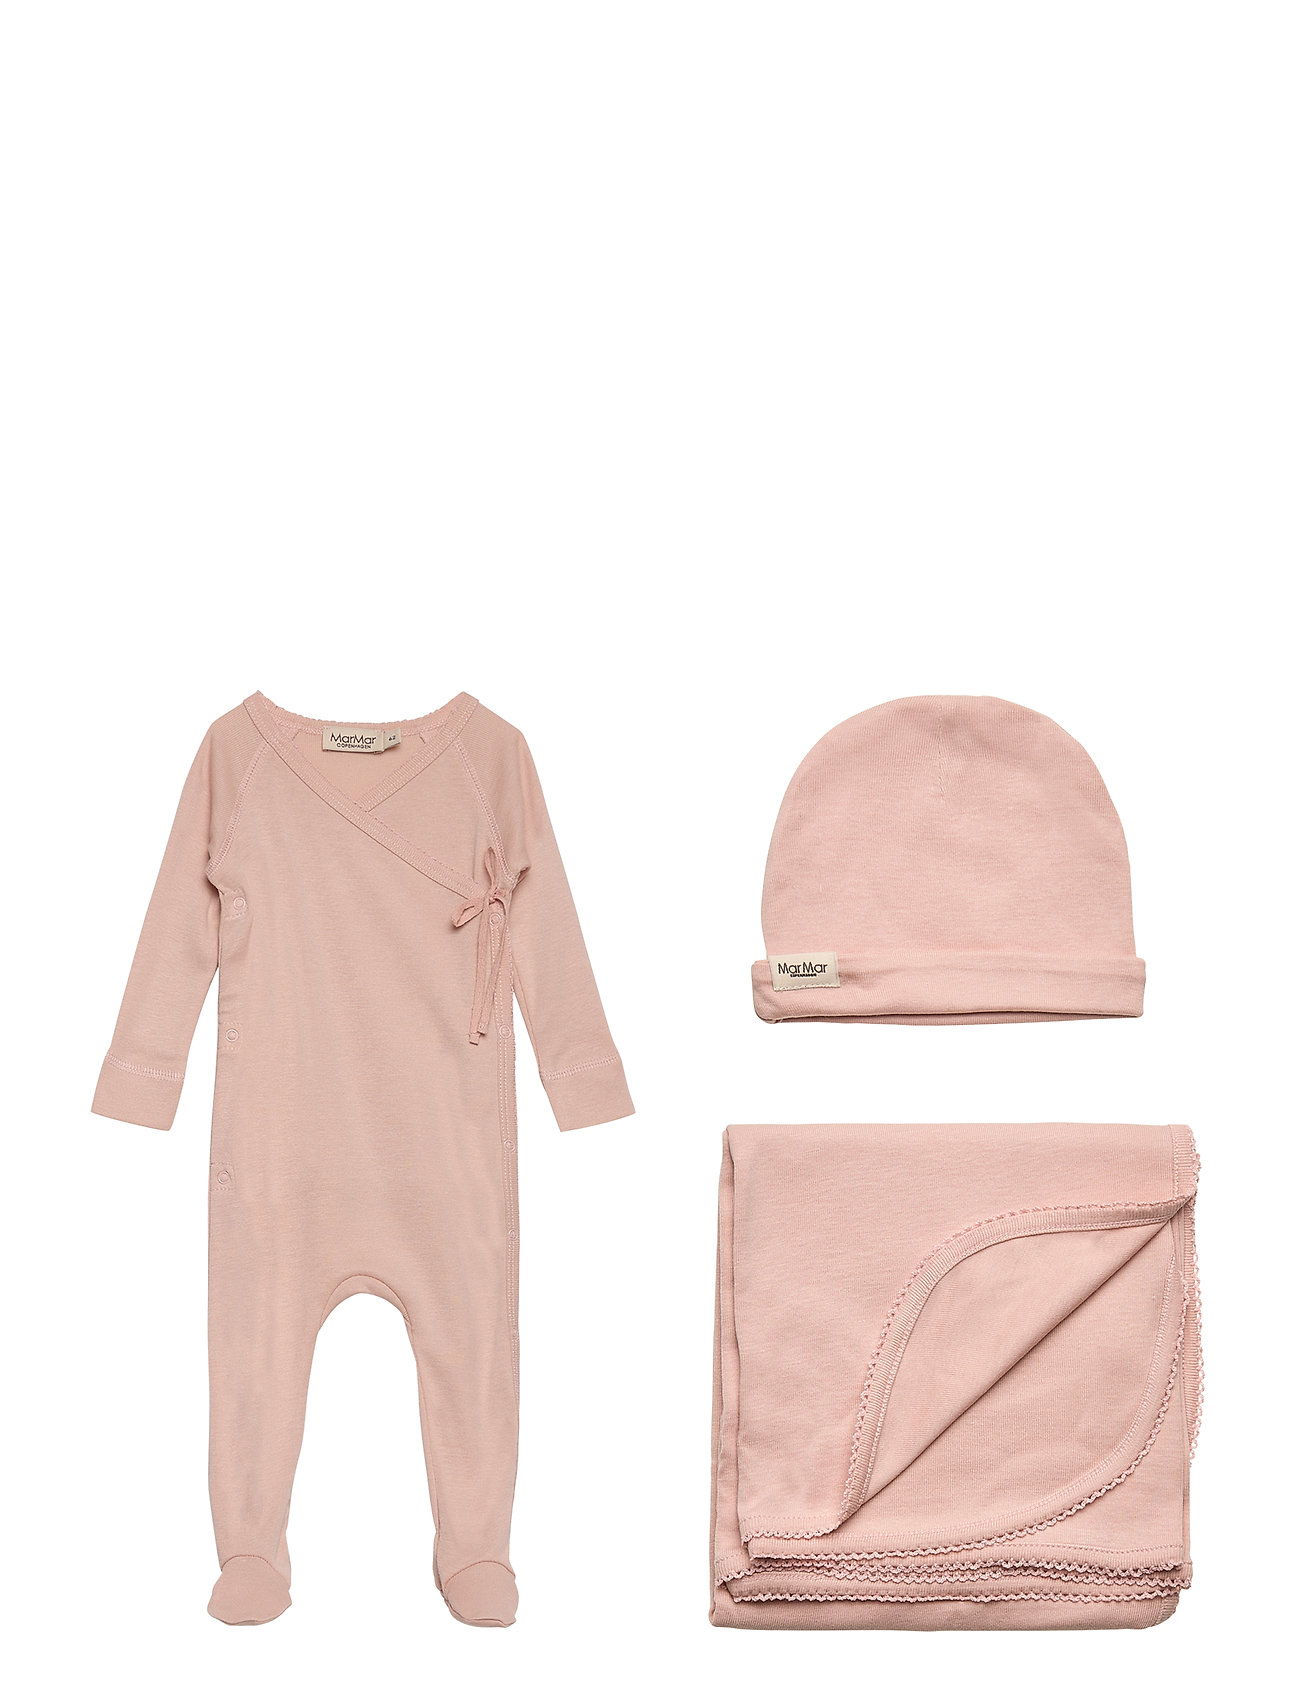 MarMar Cph New Born Gift Box - suit, hat and blanket - ROSE